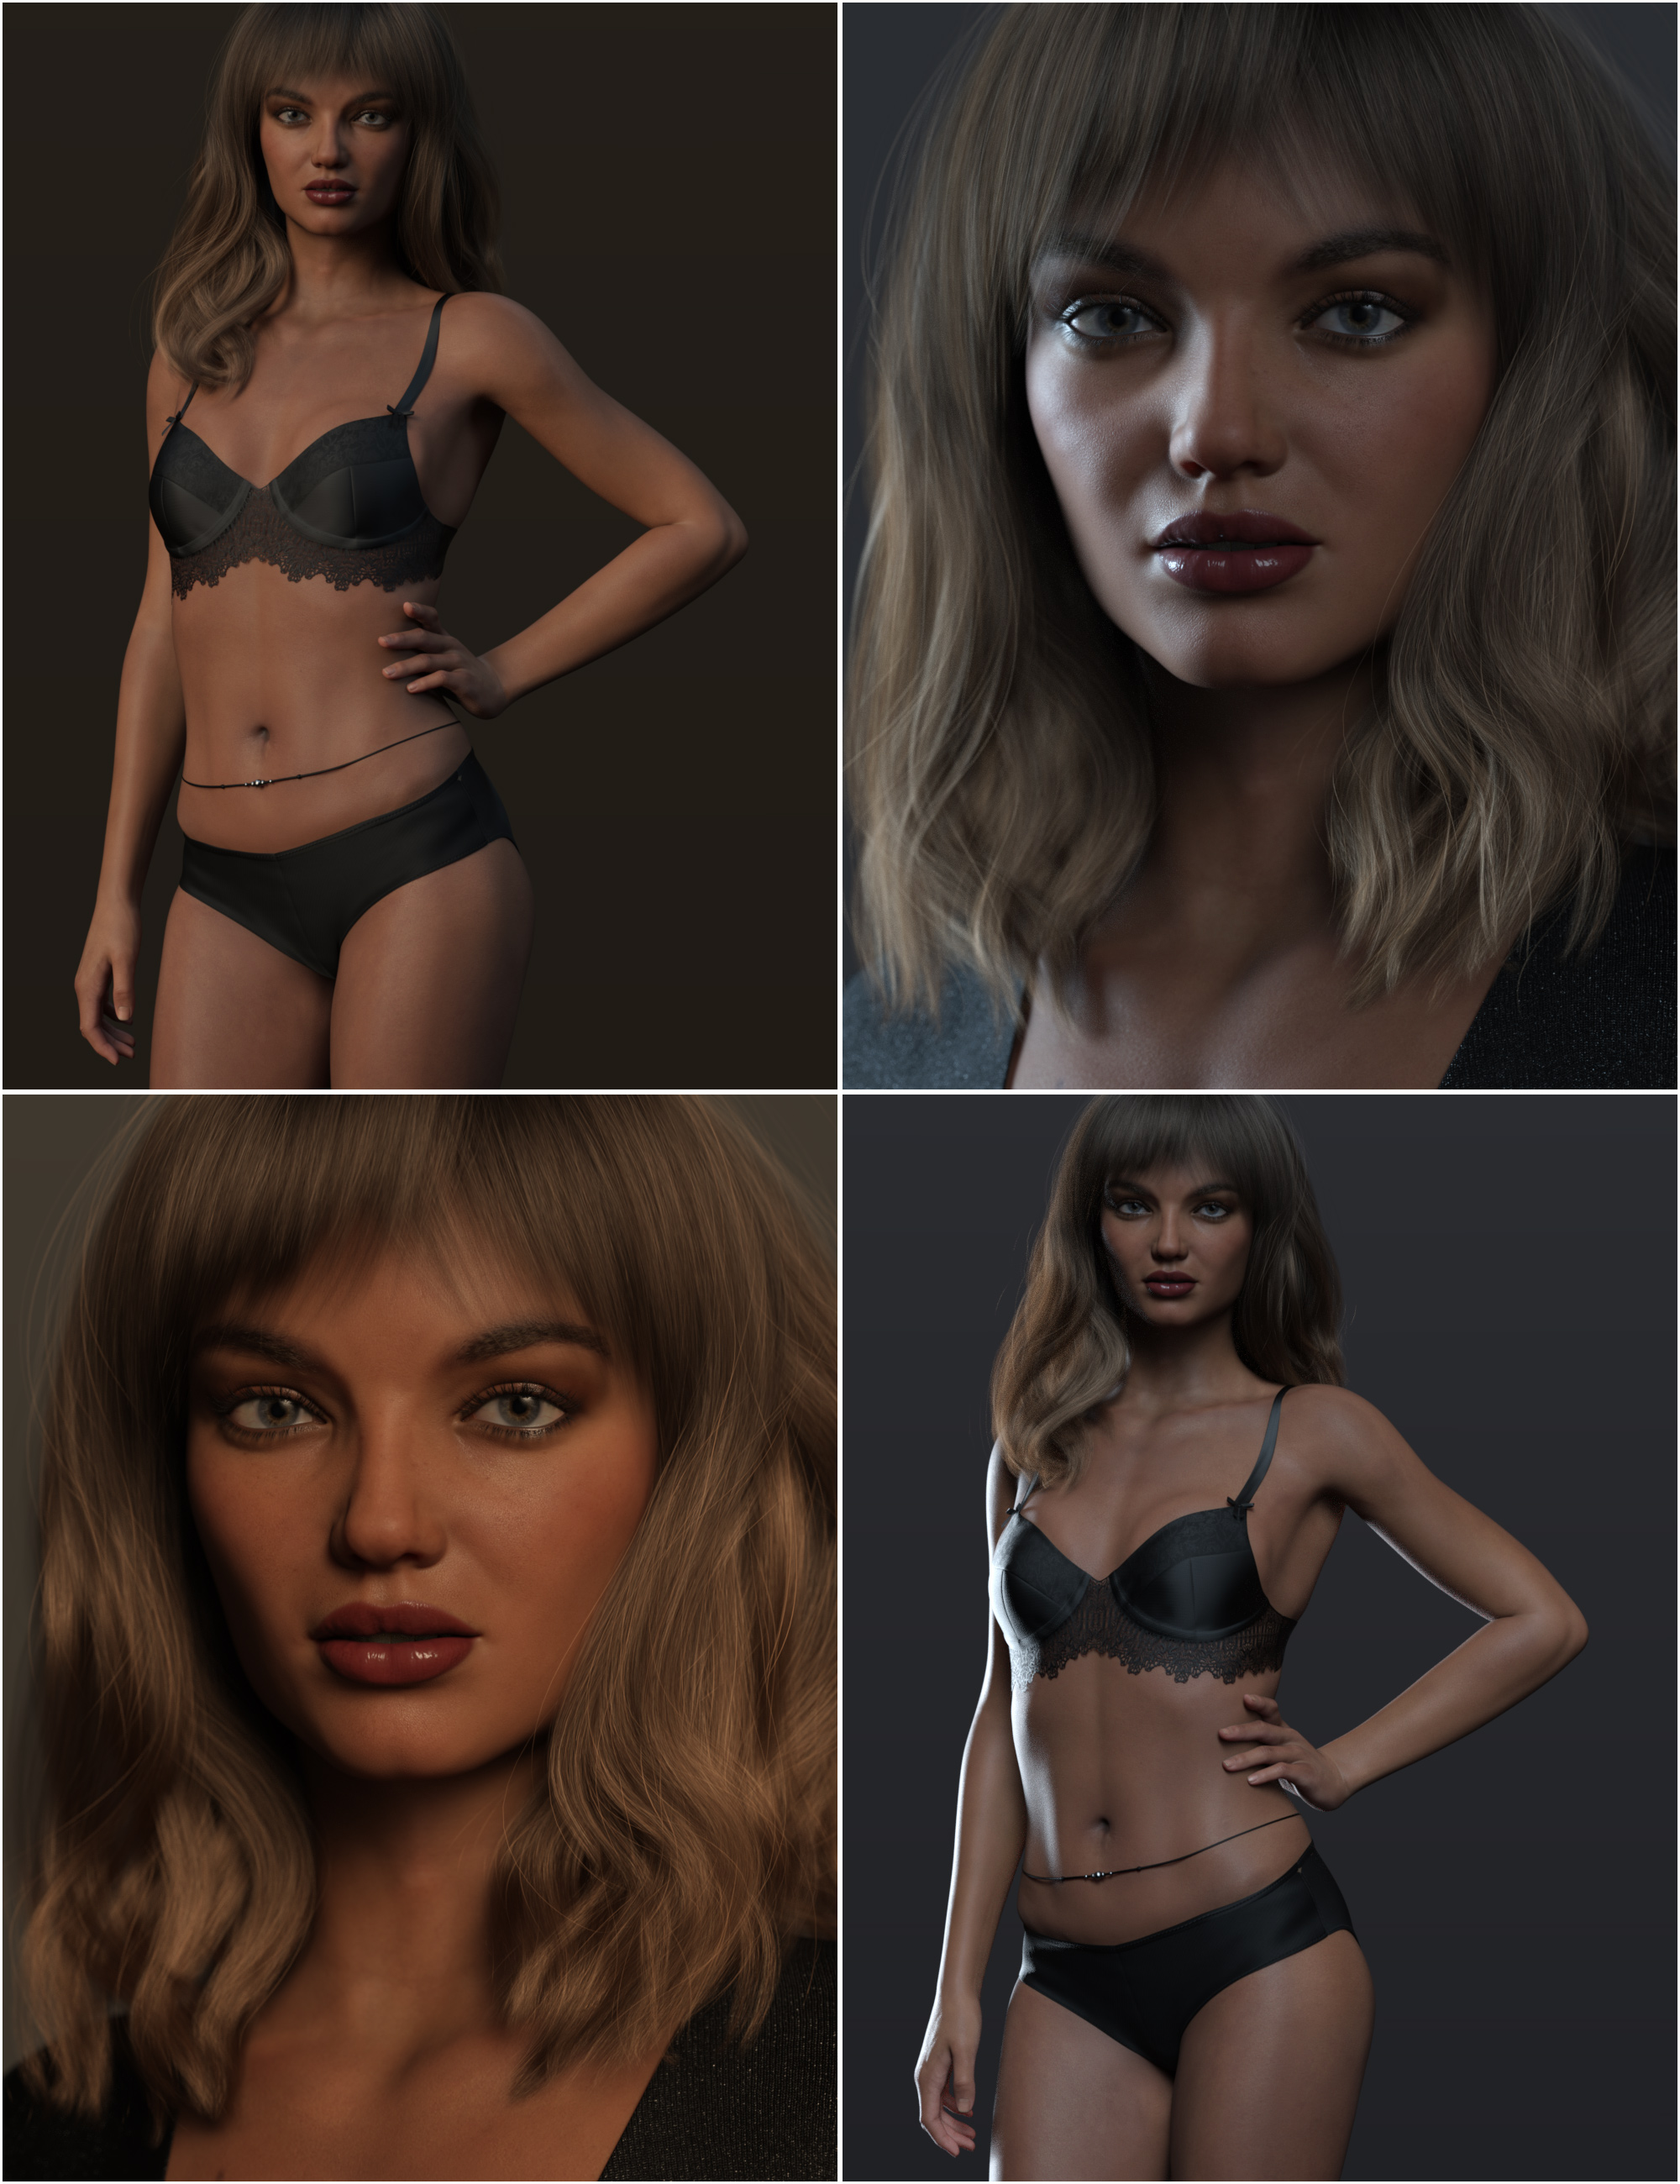 Render RY Inessa - Lights, Expressions and Cameras by: outoftouchRaiya, 3D Models by Daz 3D